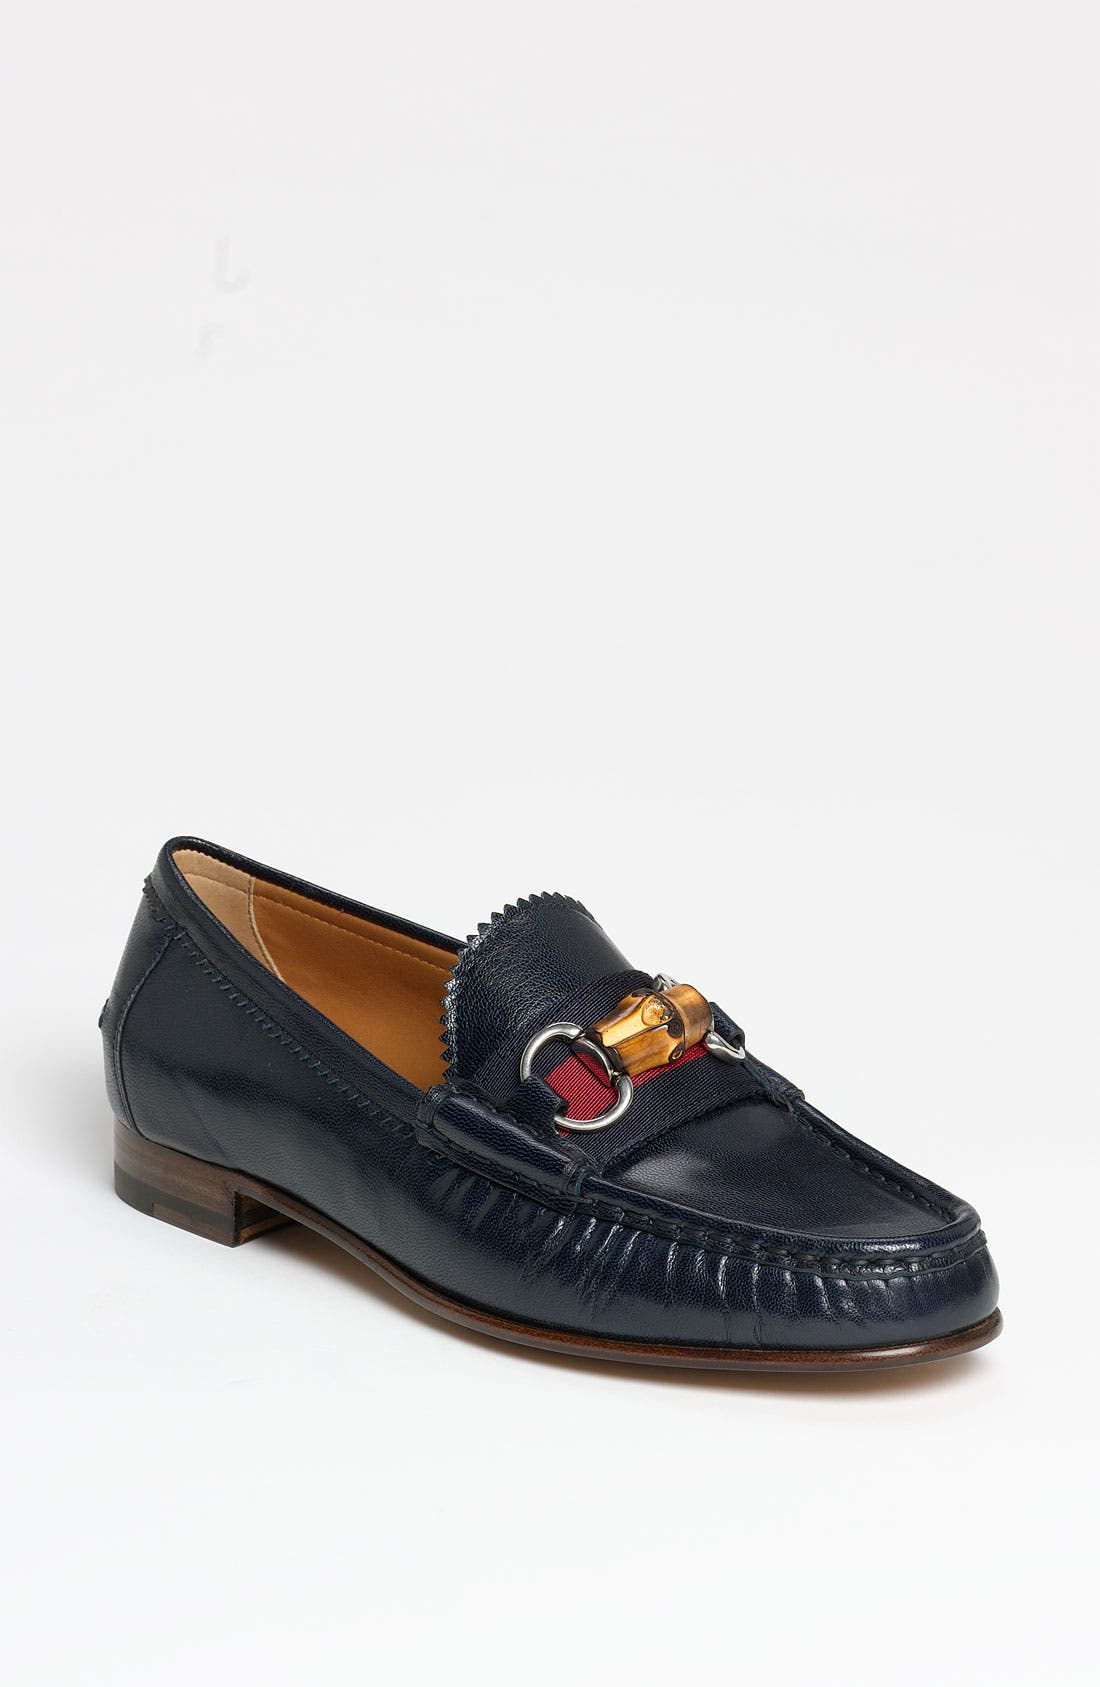 Alternate Image 1 Selected - Gucci 'Clyde' Loafer